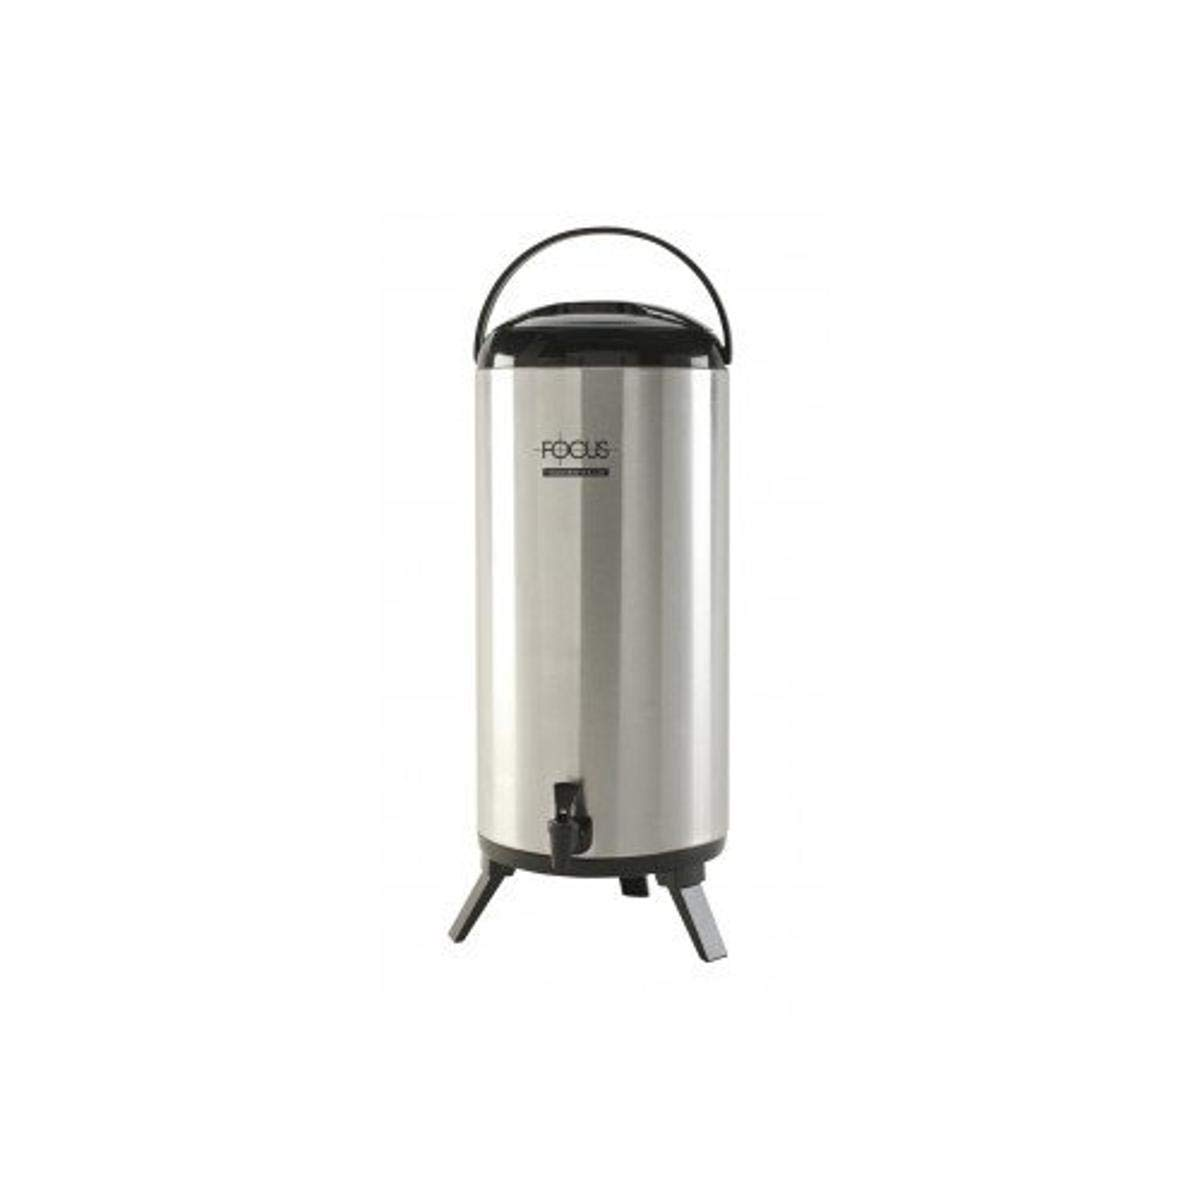 Focus Foodservice BD95SS Vacuum Insulated Carafe Qua 10 Rapid rise Thermal Super beauty product restock quality top!